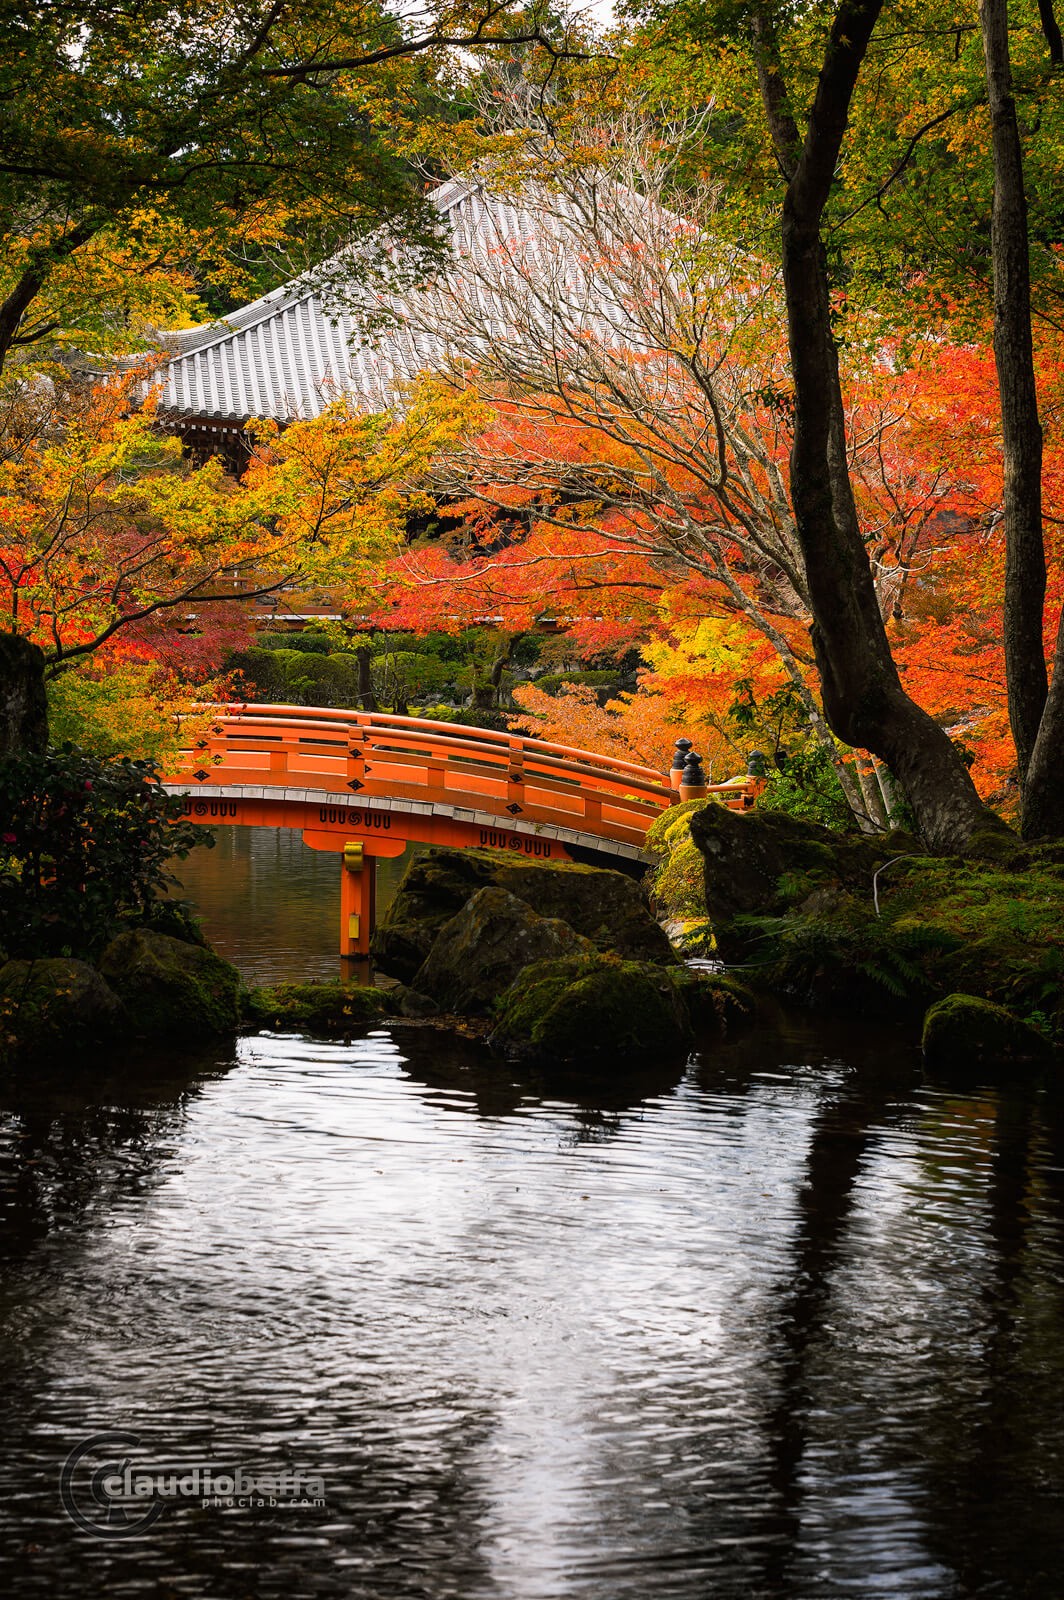 DaigoJi, Autumn, BentenDo, Kyoto, Japan, Momiji, Bridge, Pond, Phoclab